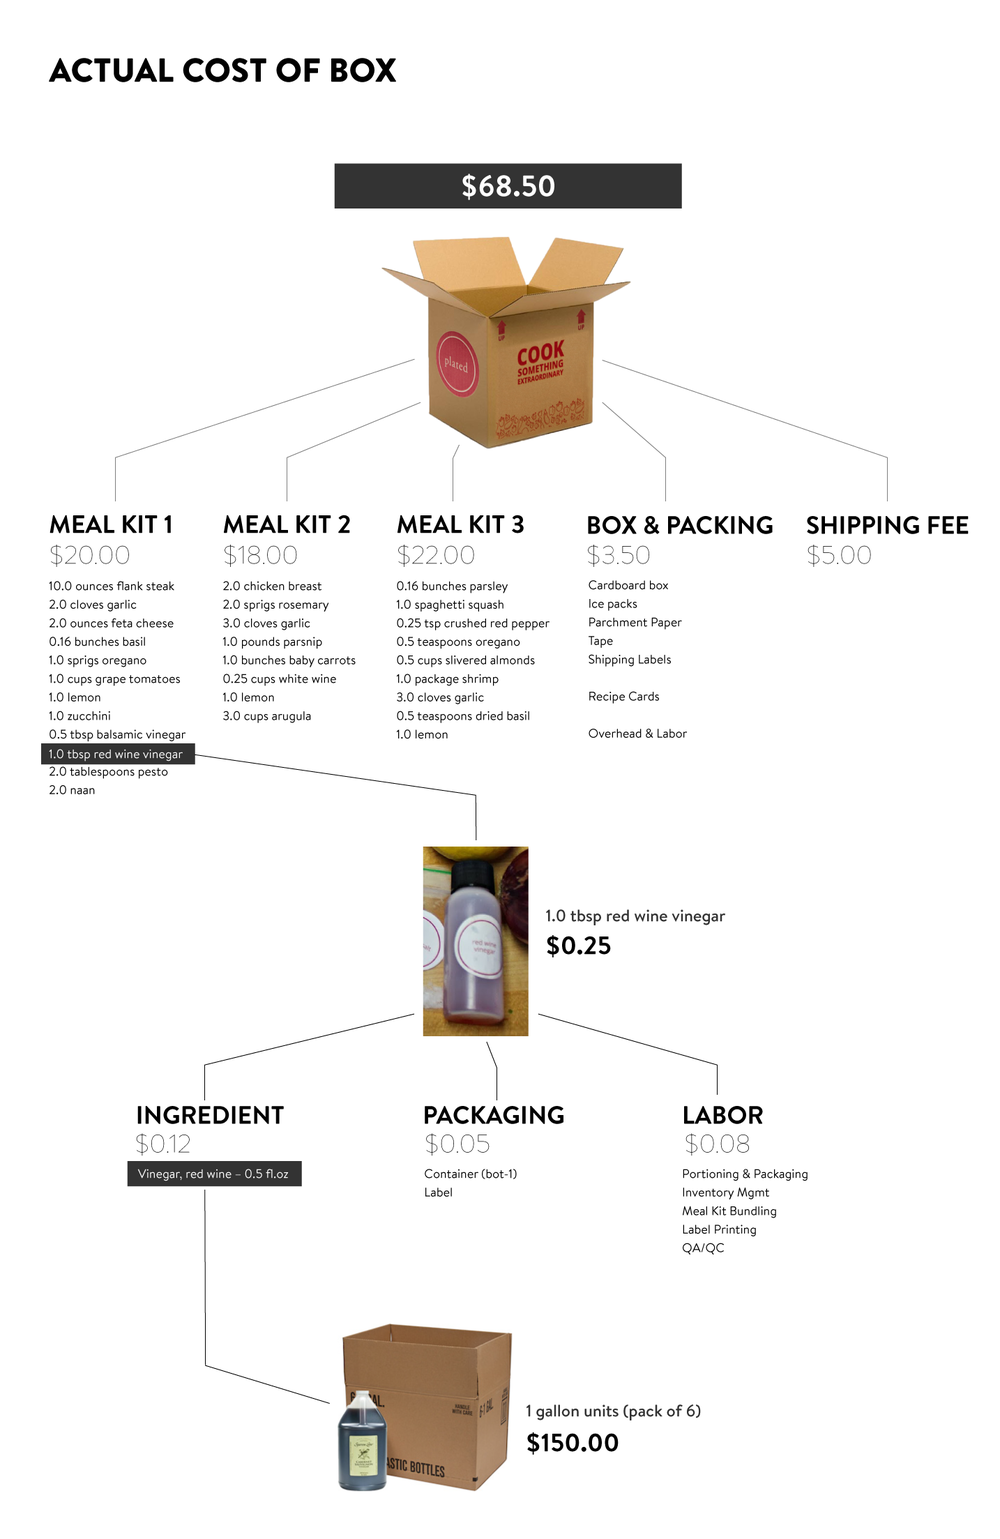 Amended graphic using sample data to visually convey the complexity of the contents in each box.